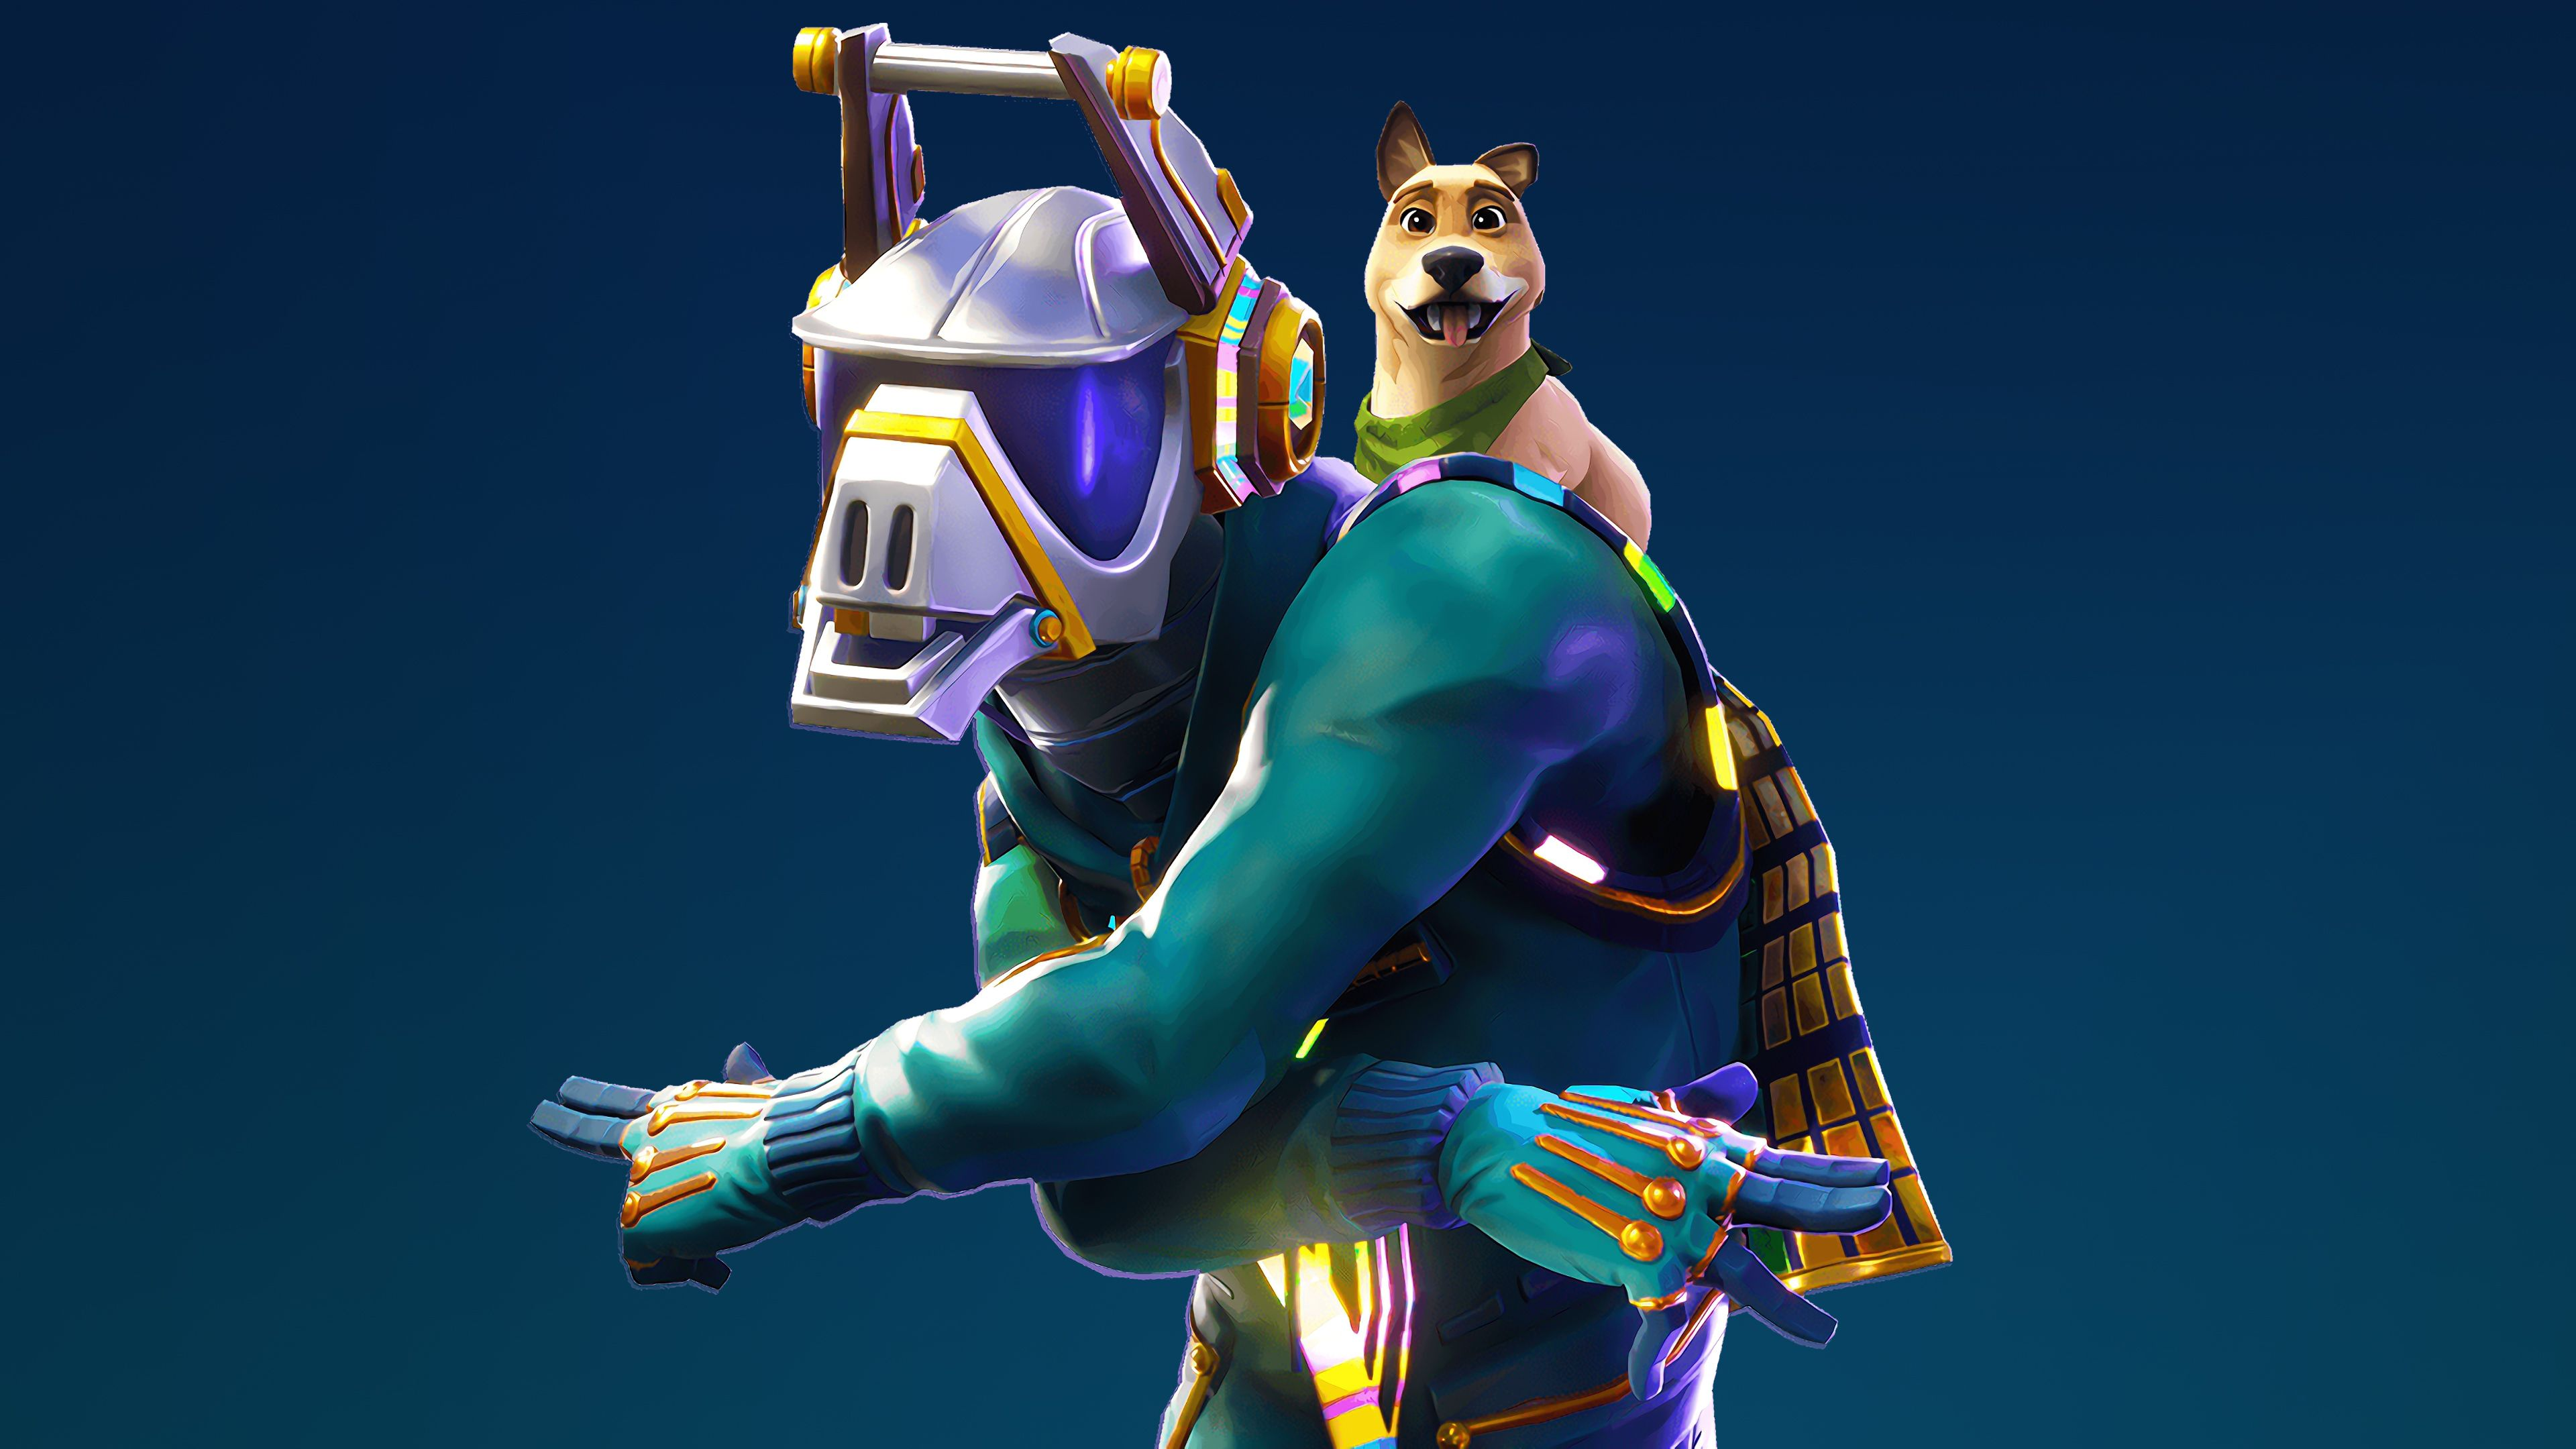 Dj Yonder Is The First Epic Skin You Get From The Season 6 Battle